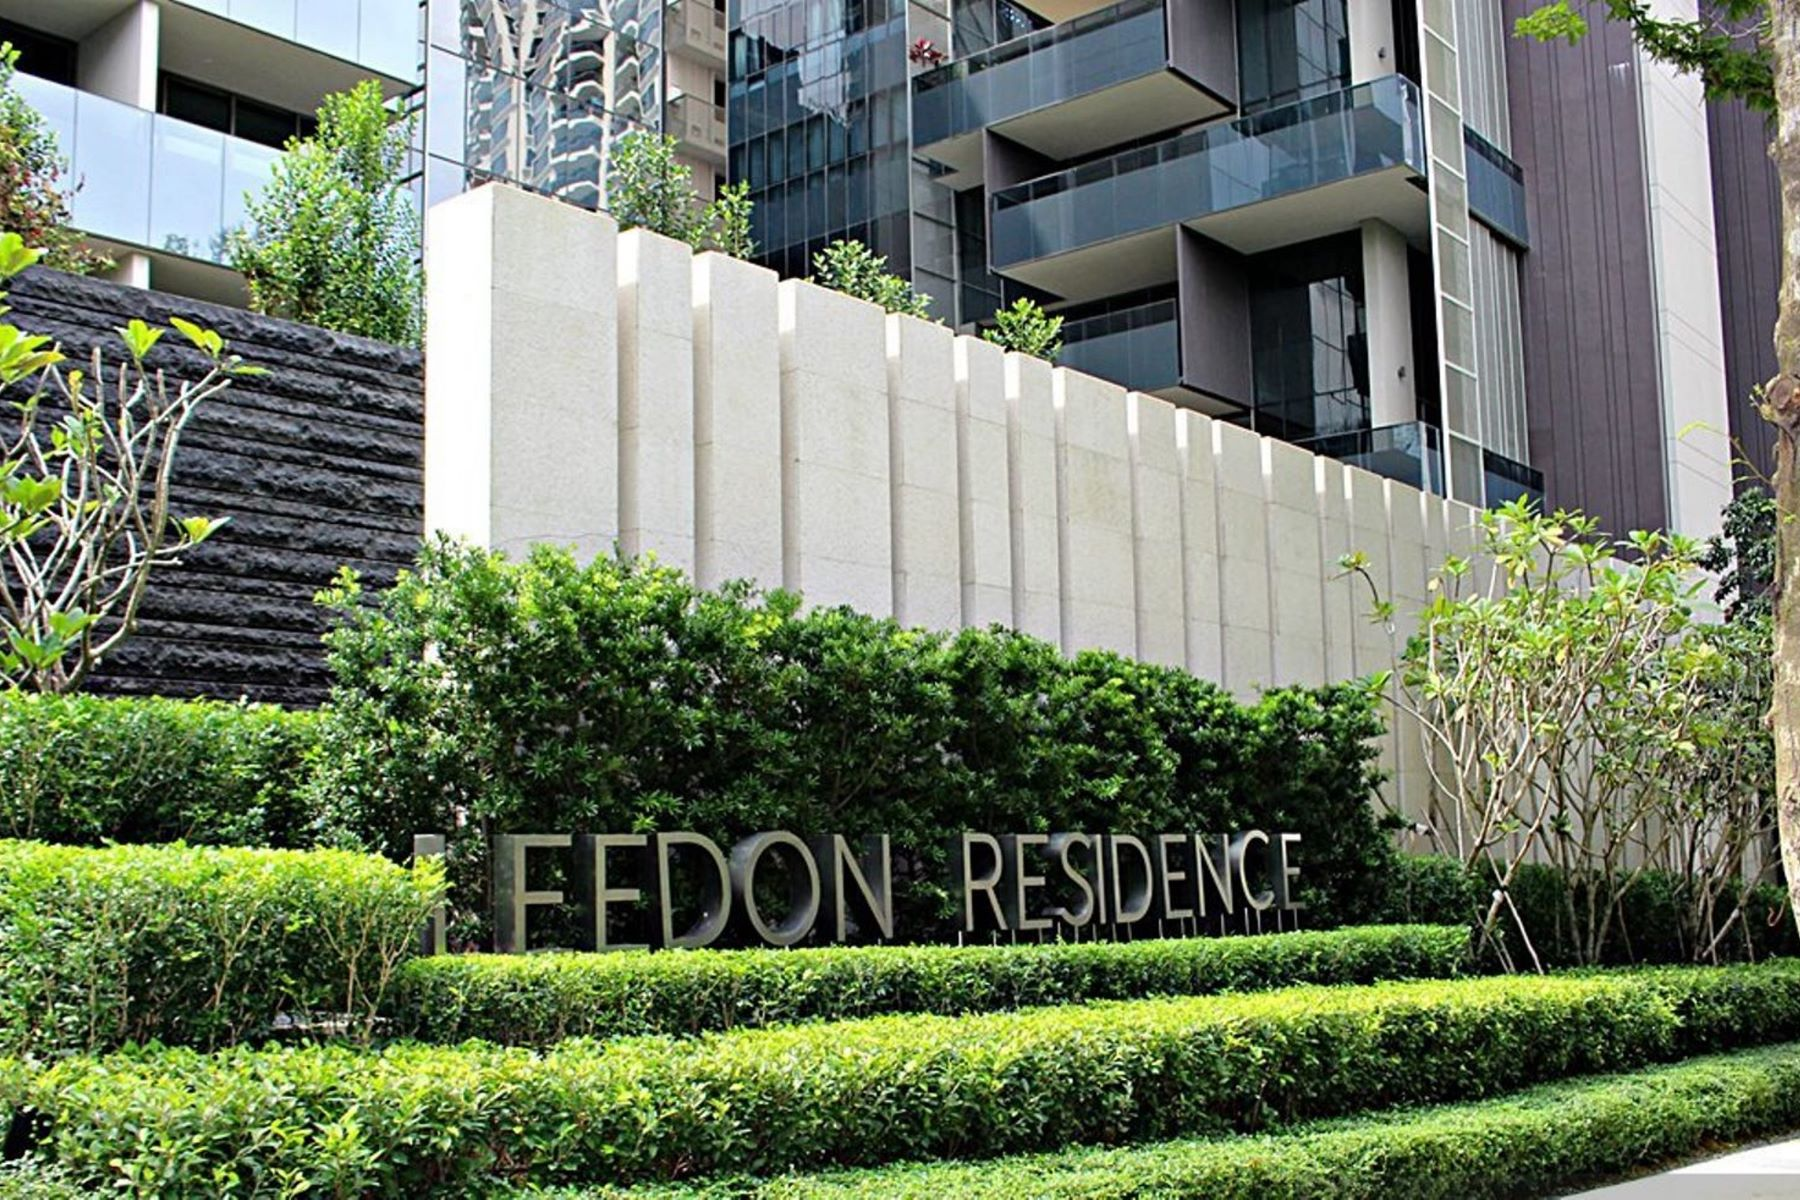 Additional photo for property listing at Leedon Residence 12 Leedon Heights Singapore, Cities In Singapore 267935 Singapore